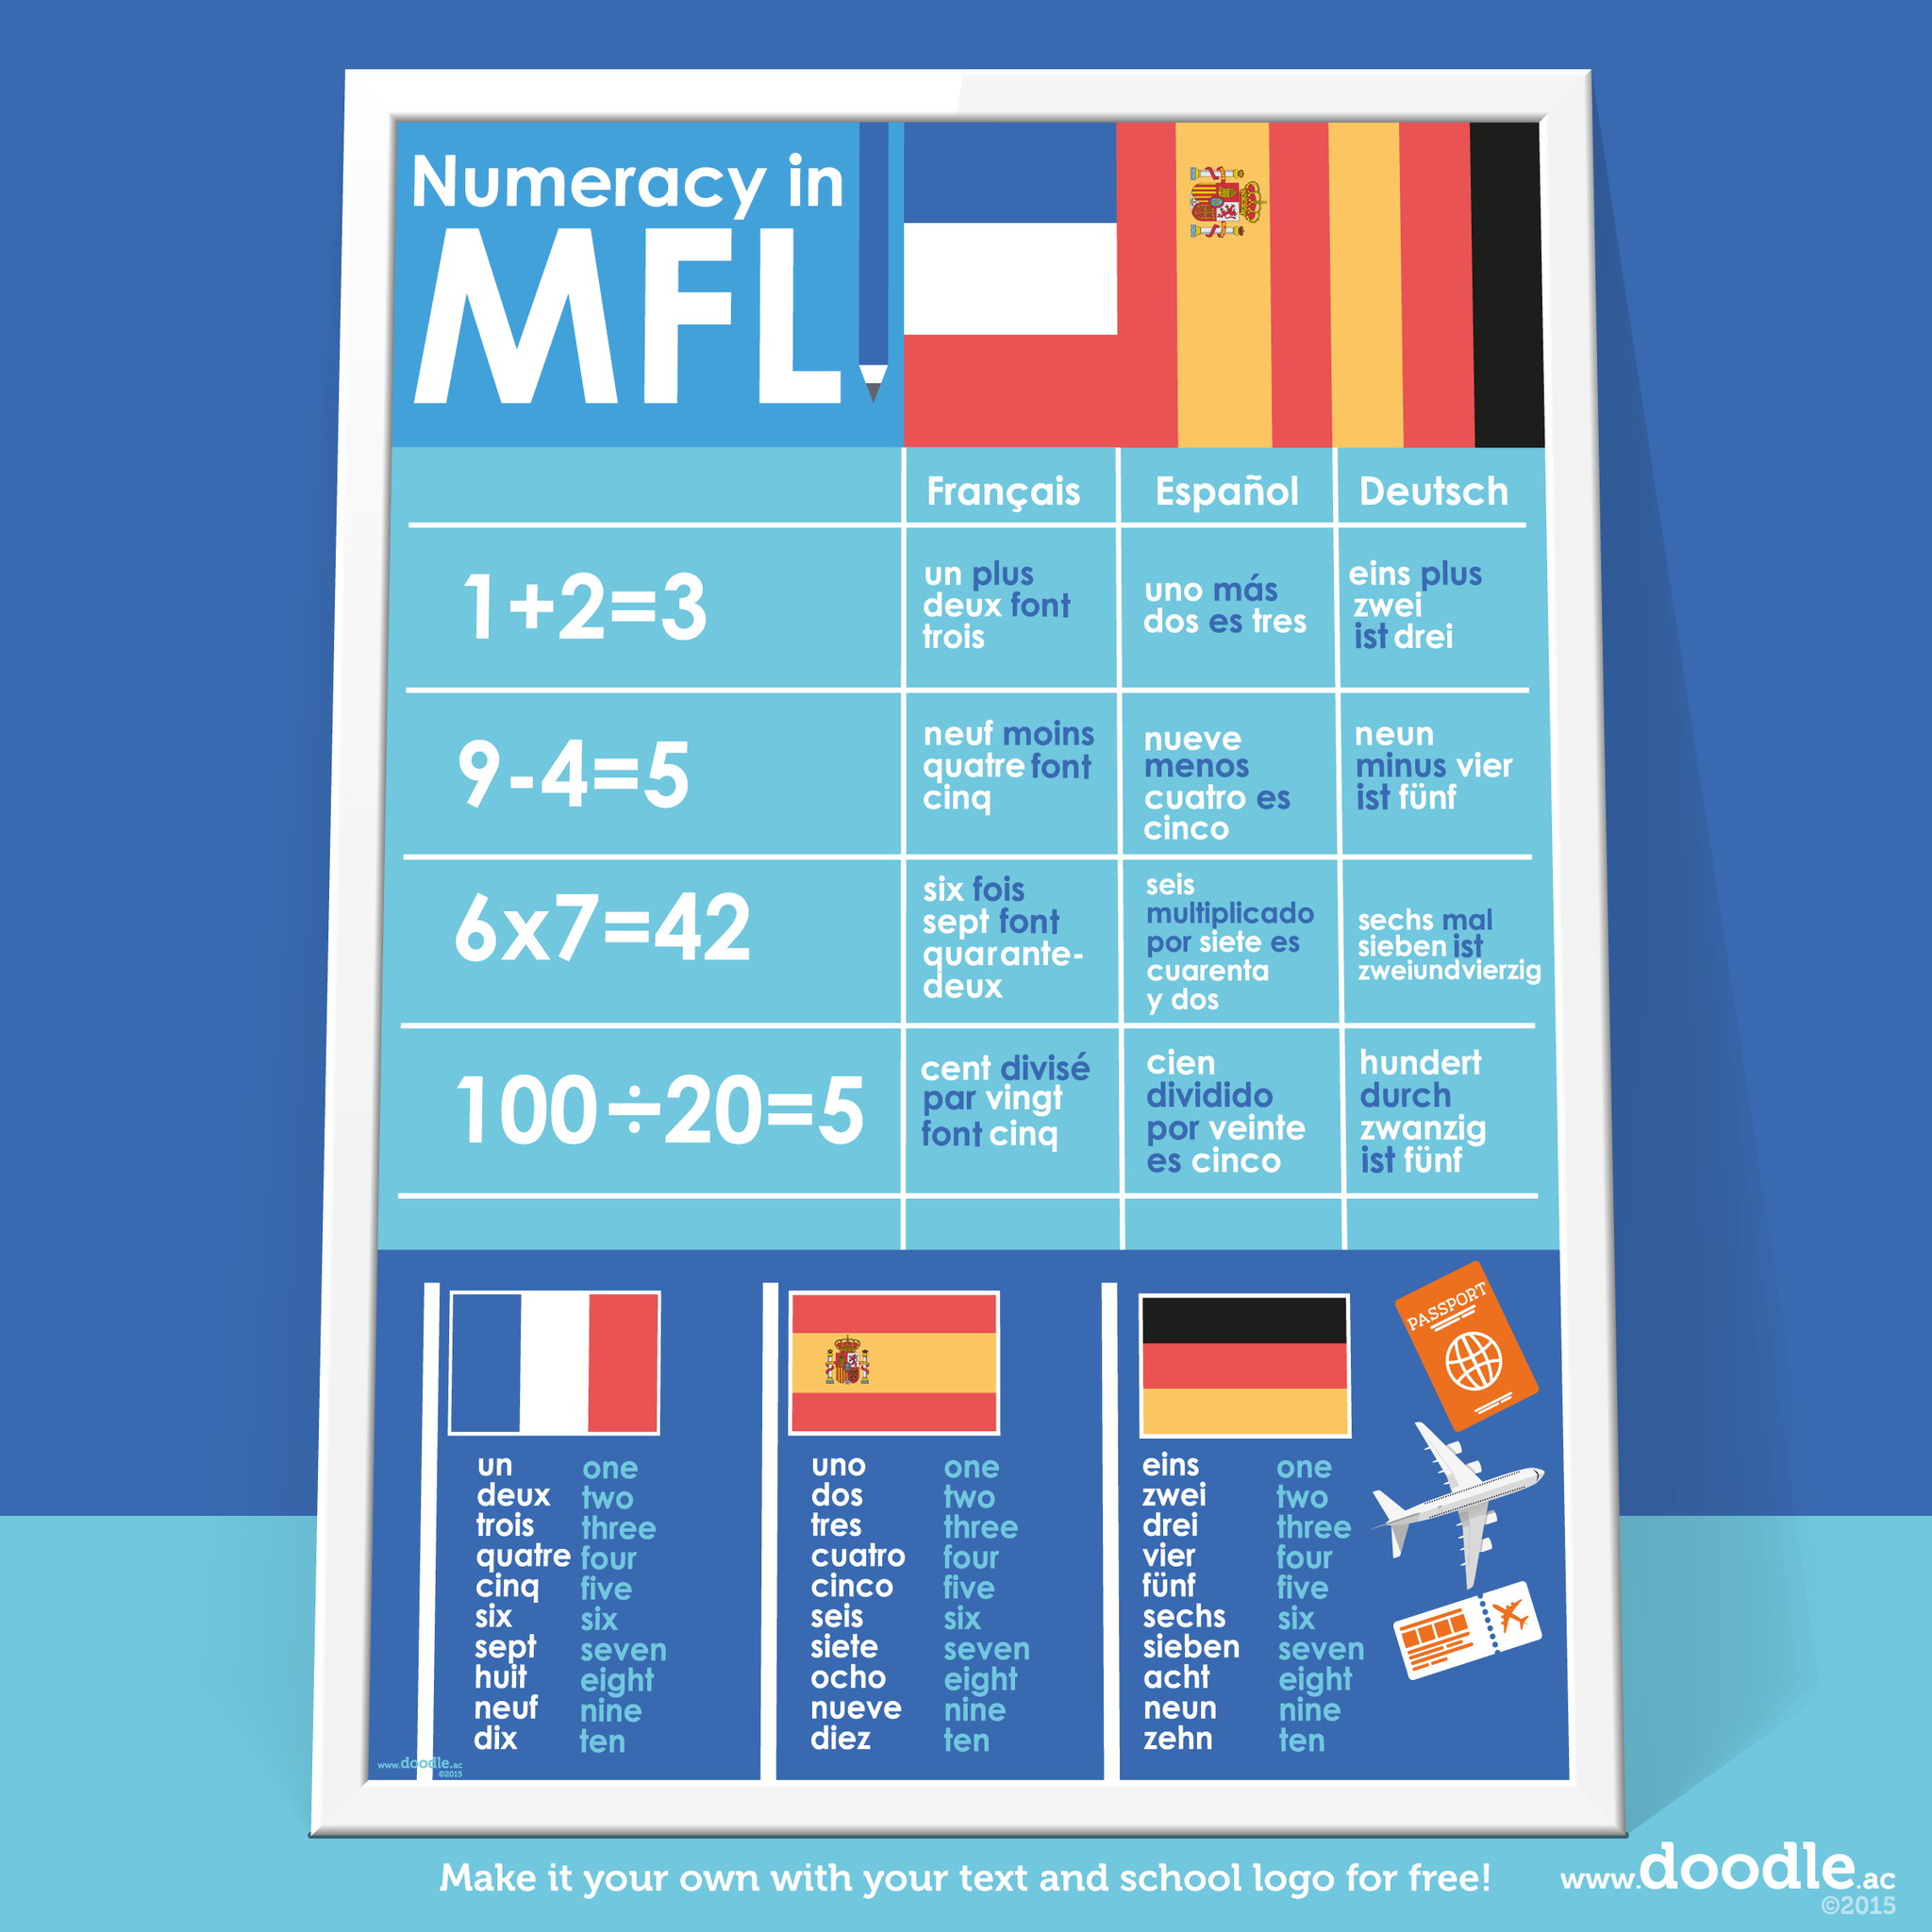 numeracy in MFL poster - doodle education